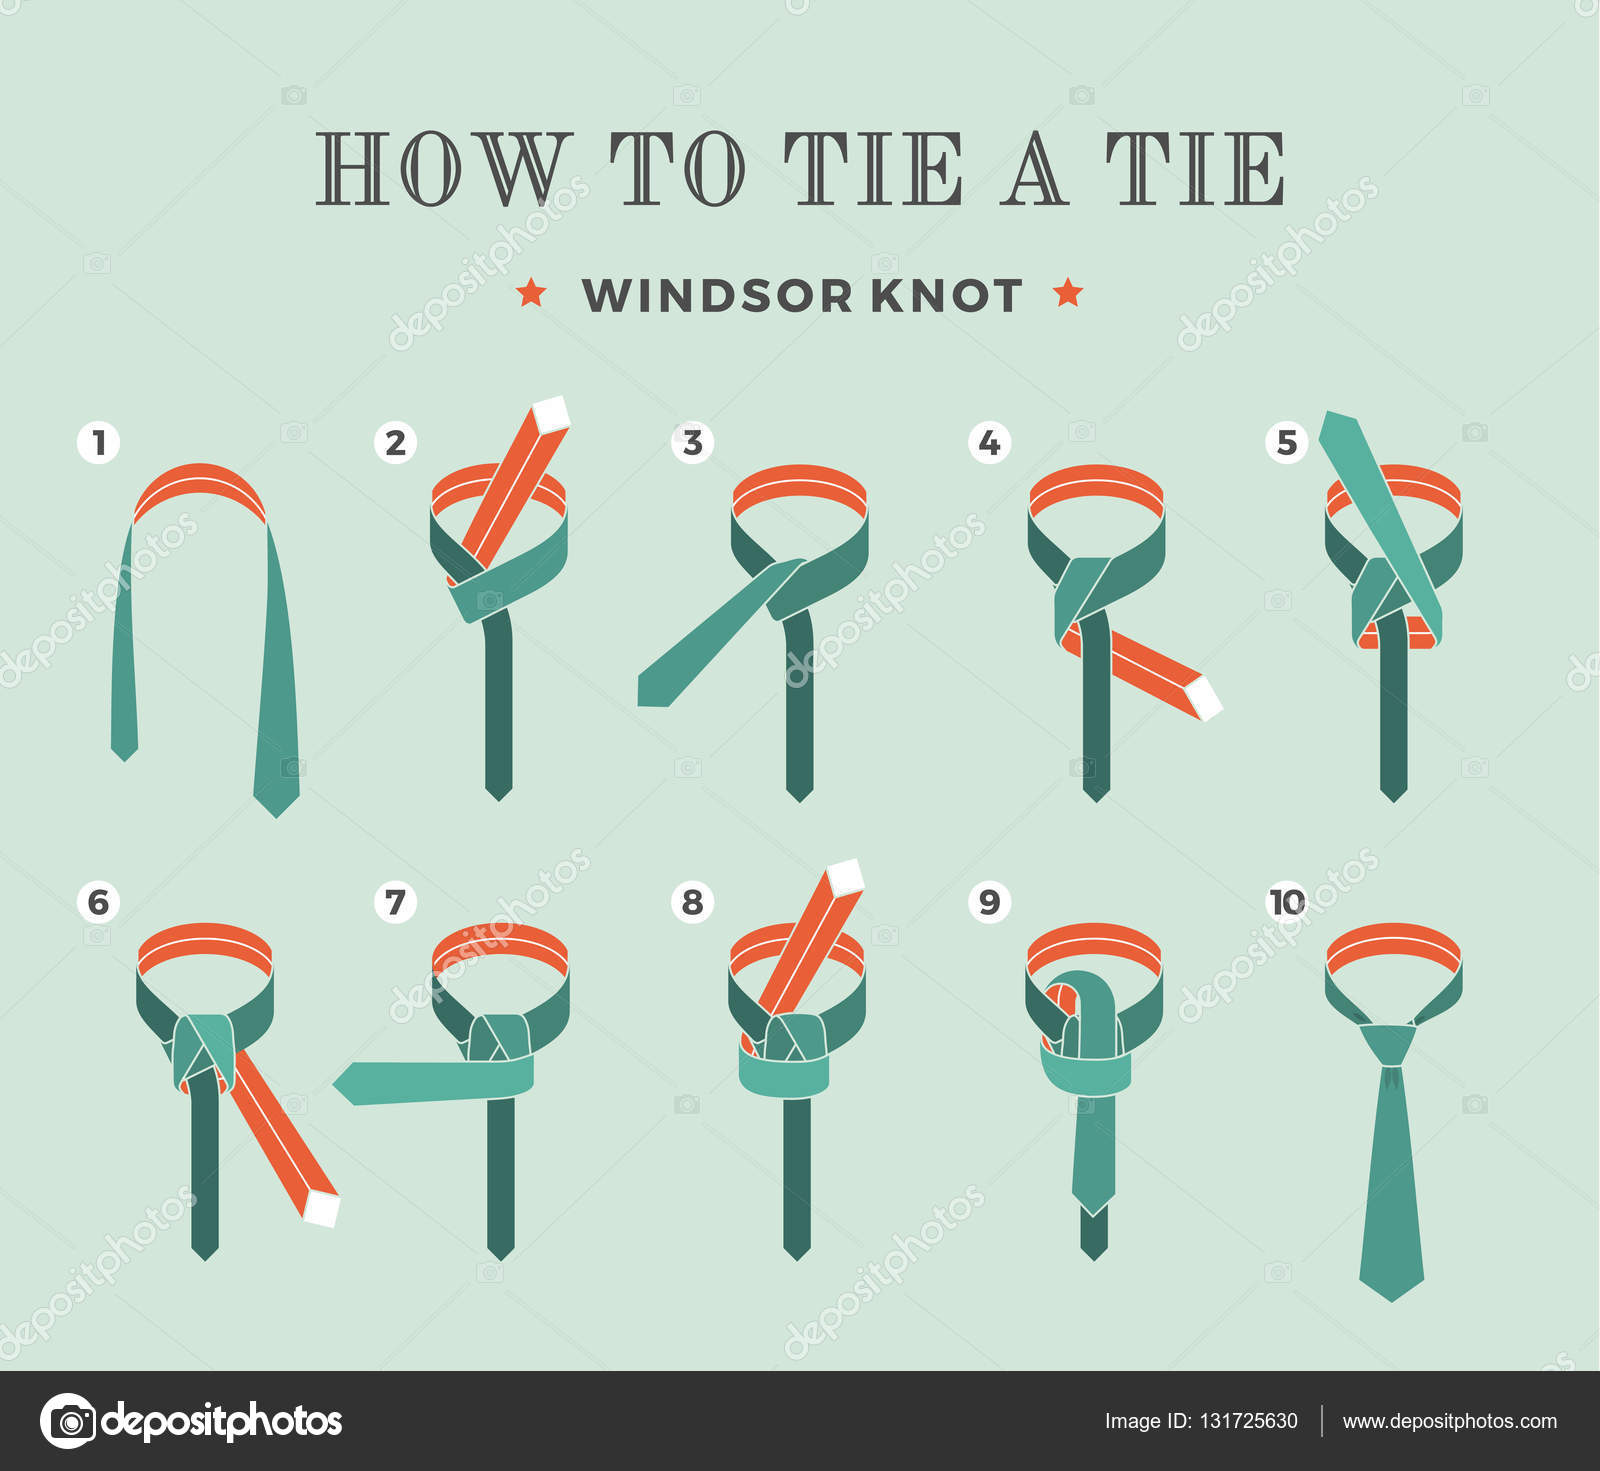 Instructions on how to tie a tie on the turquoise background of instructions on how to tie a tie on the turquoise background of the eight steps ccuart Choice Image